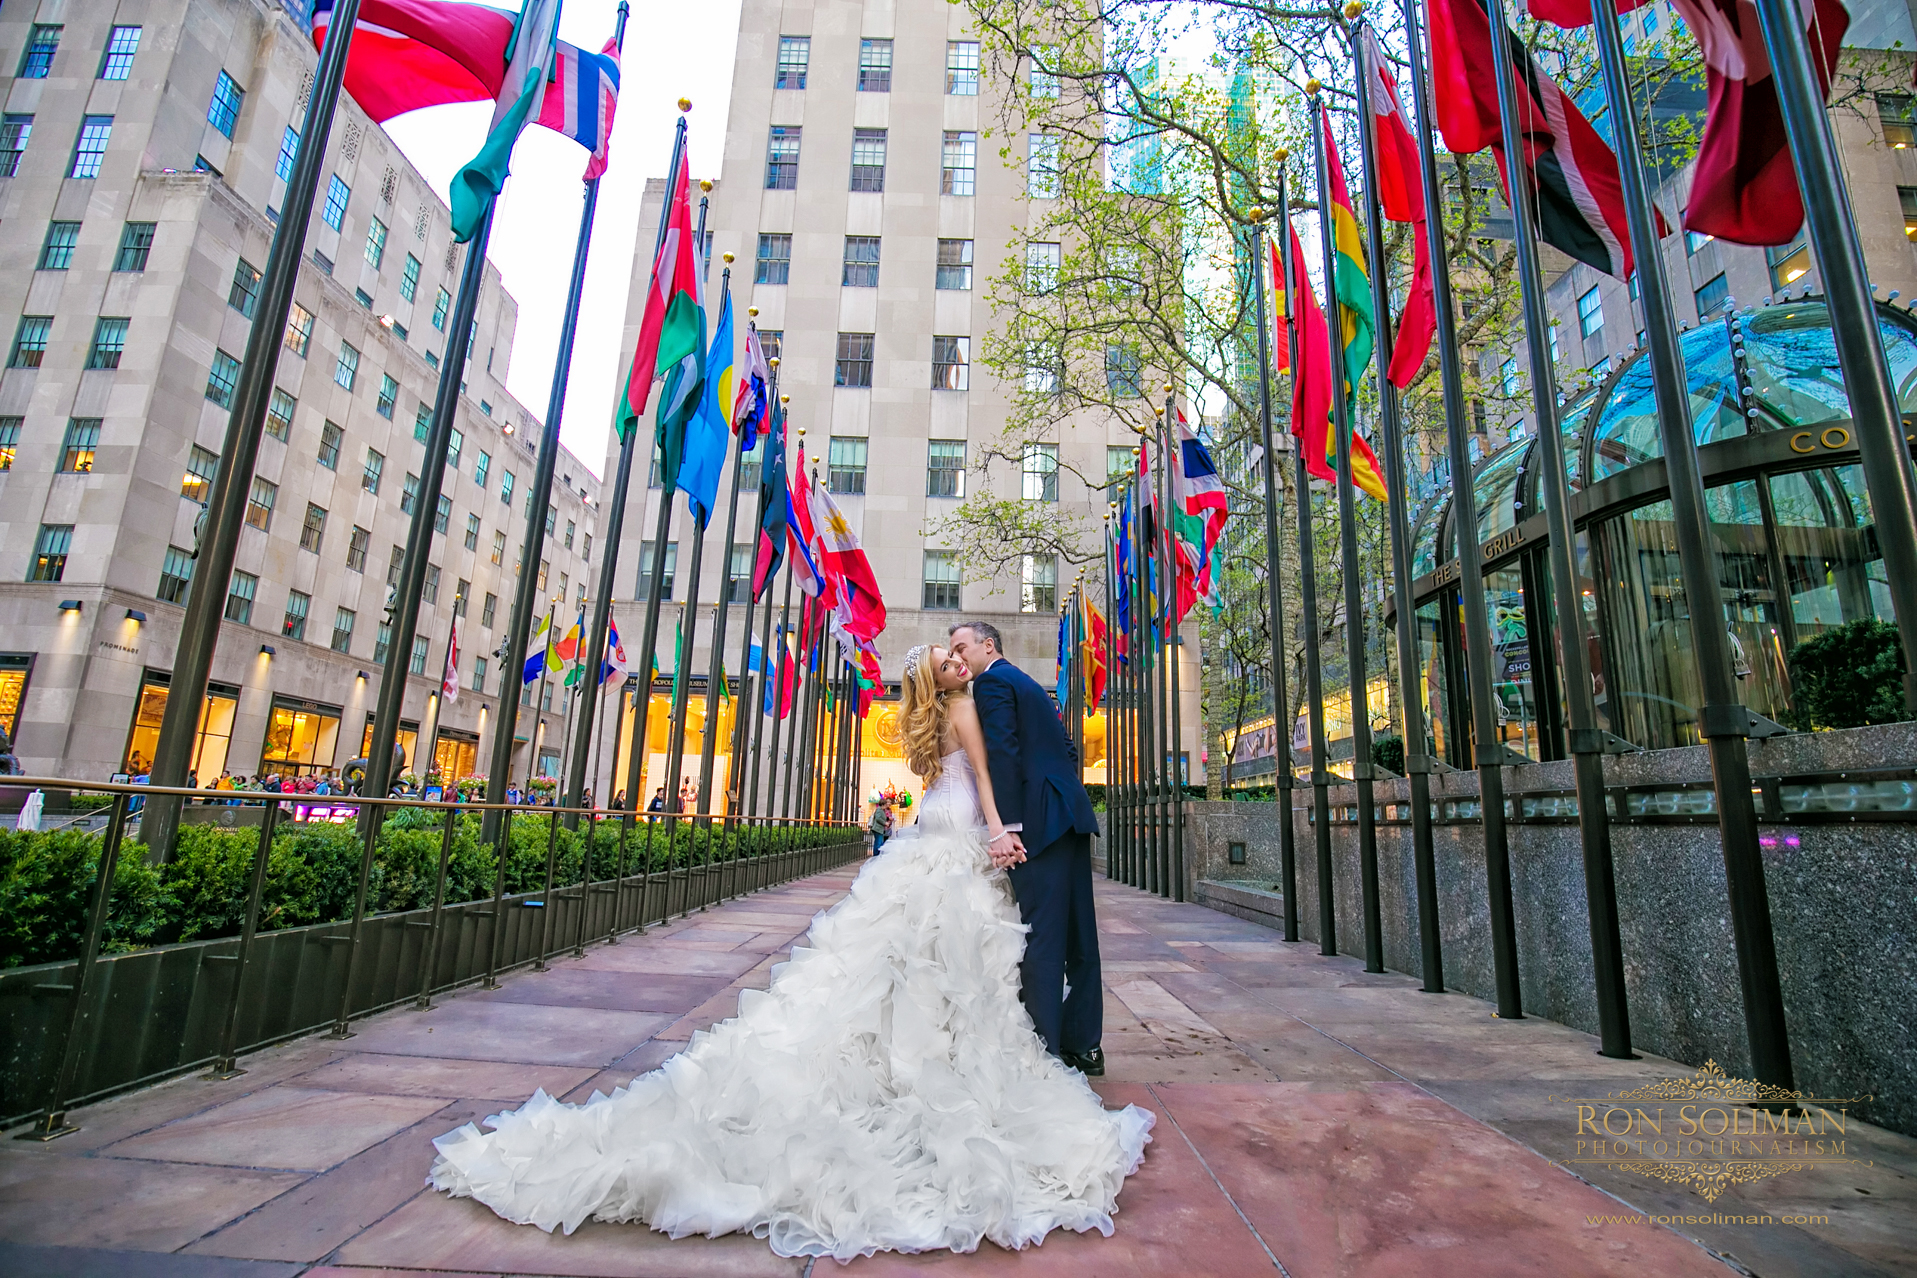 RAINBOW ROOM WEDDING 137